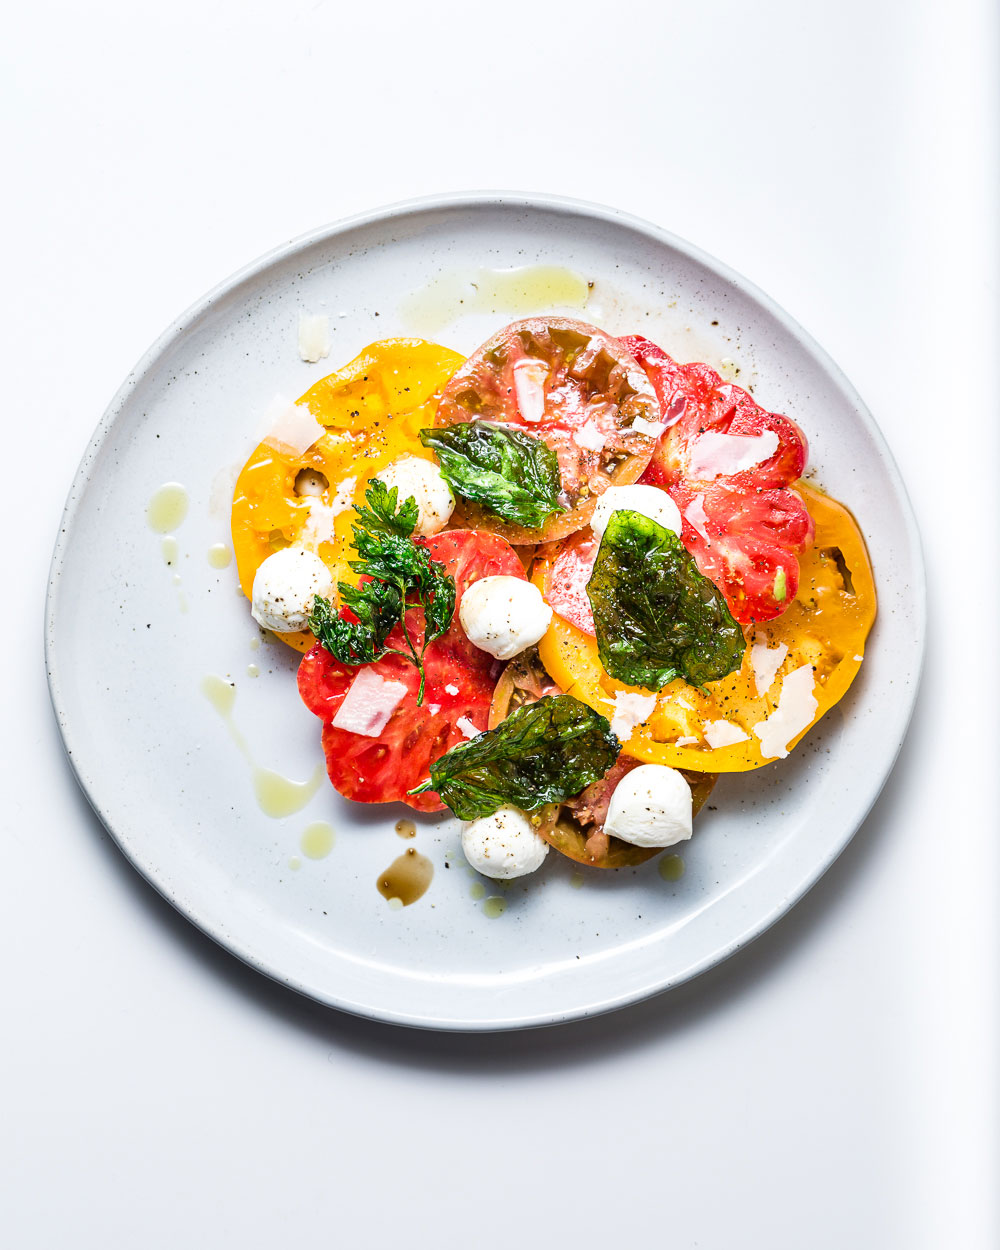 Heirloom Tomato Salad with fresh mozzarella and fried basil